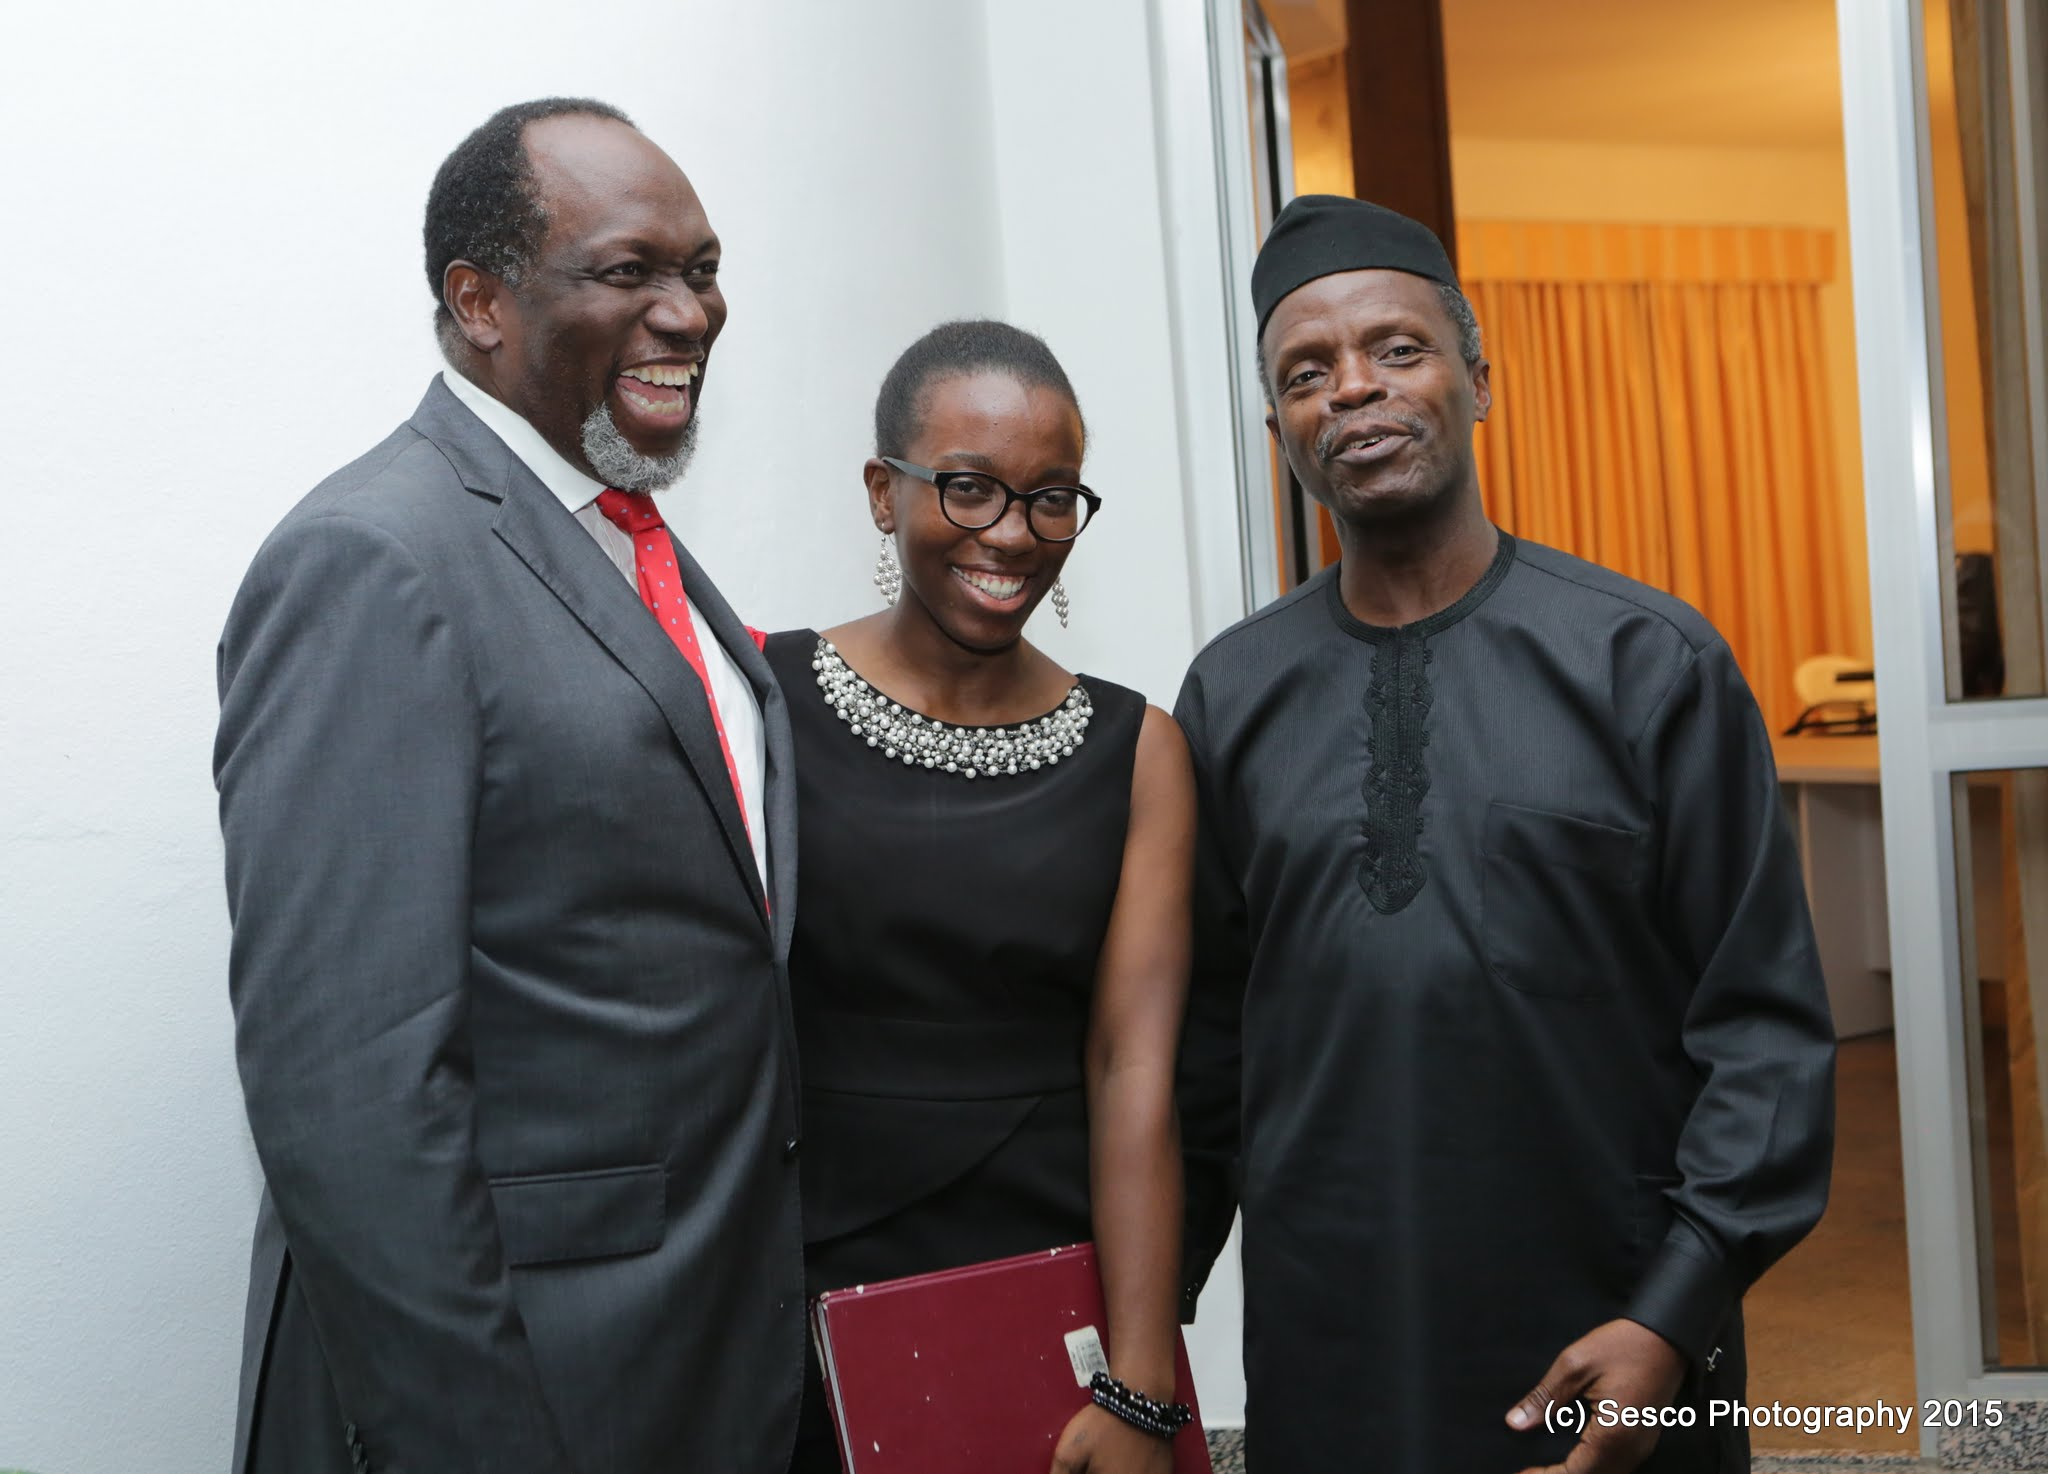 VP Osinbajo Meets With Dr. Tunde Ayeye And Daughter On 12/05/2015